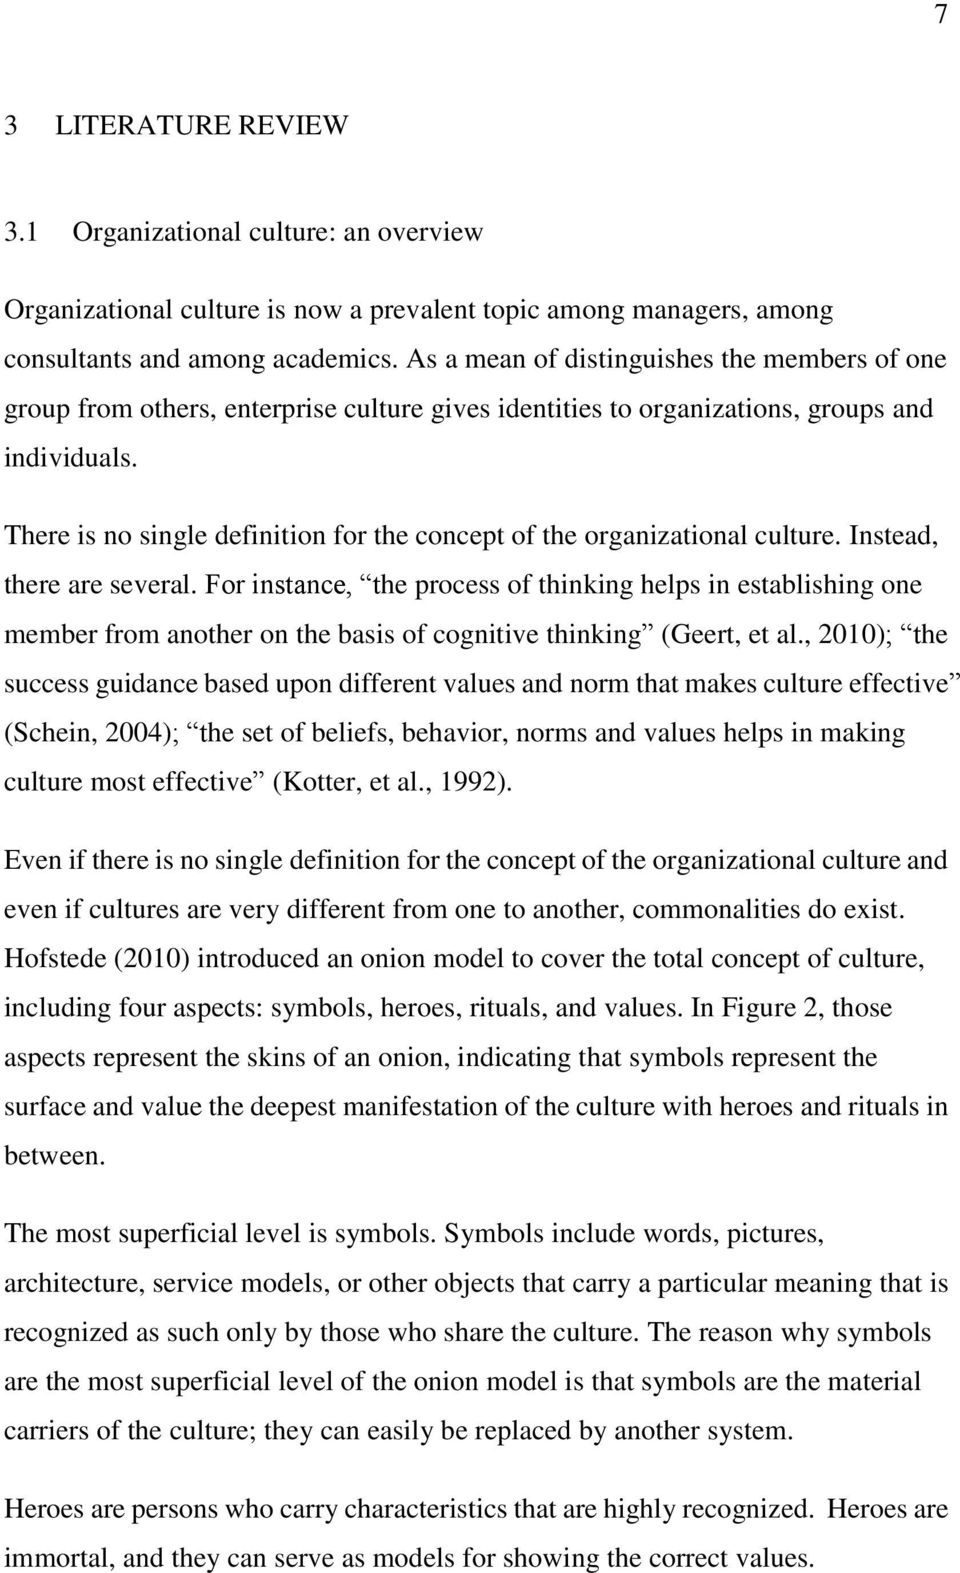 Organizational Culture Employee Behavior Pdf